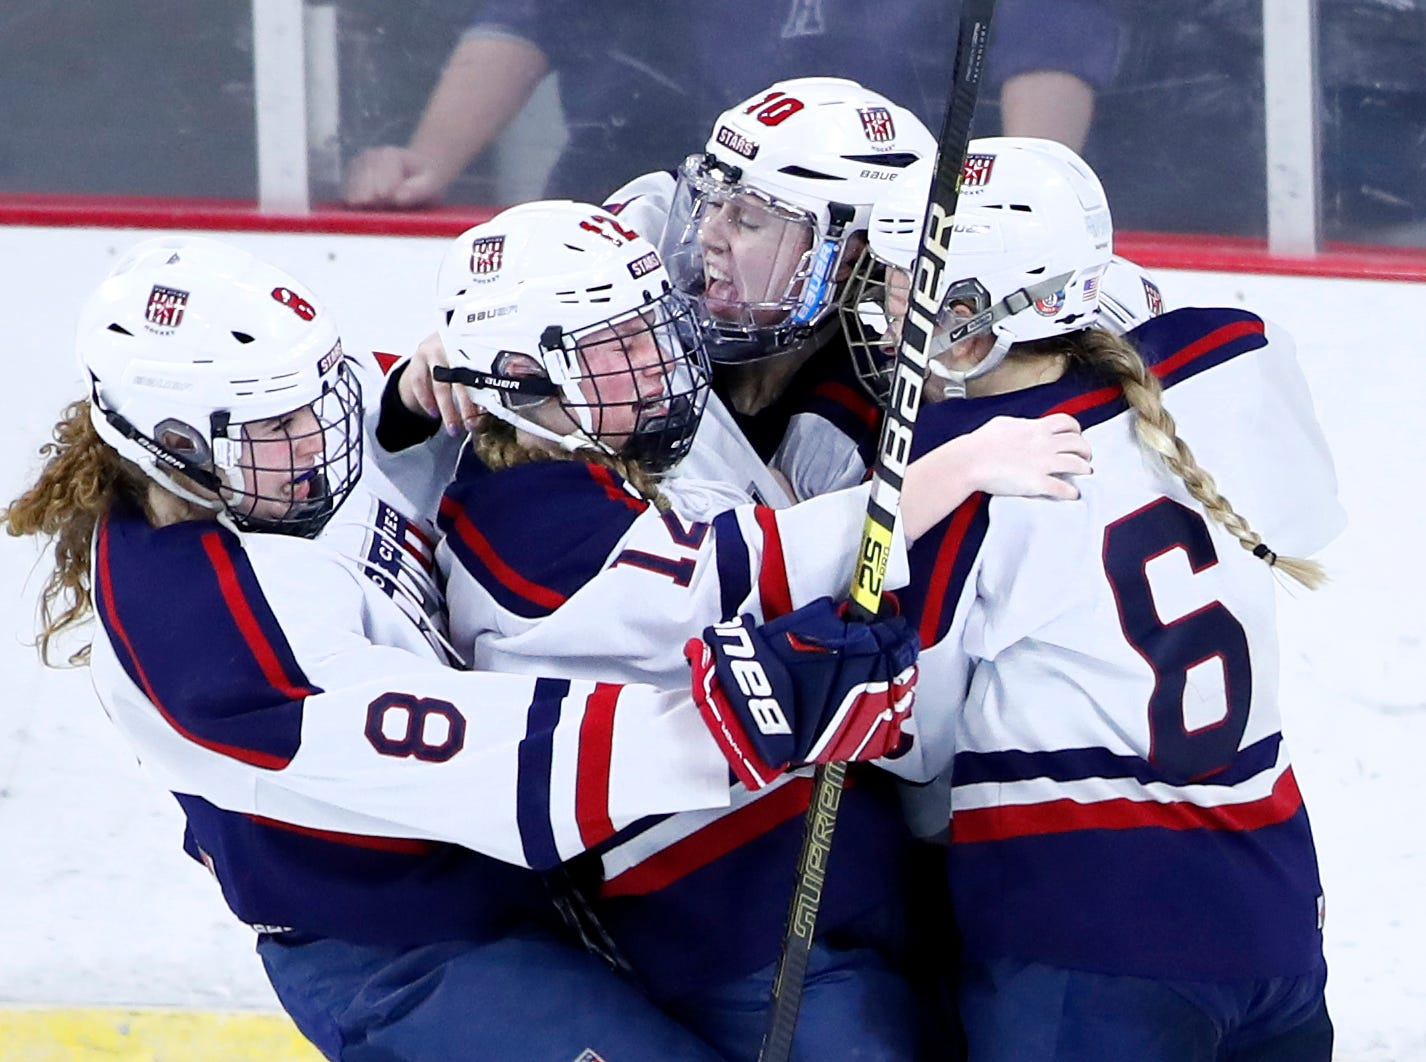 Fox Cities StarsÕ Tori Nelson (8), Annika Horman (12), and Lauryn Hull (6) rush into Maddy Jablonski (10) after she scored the game winning goal against Hudson in double overtime during the WIAA State Hockey Tournament championship match Saturday, March 2, 2019, at Veterans Memorial Coliseum in Madison, Wis.